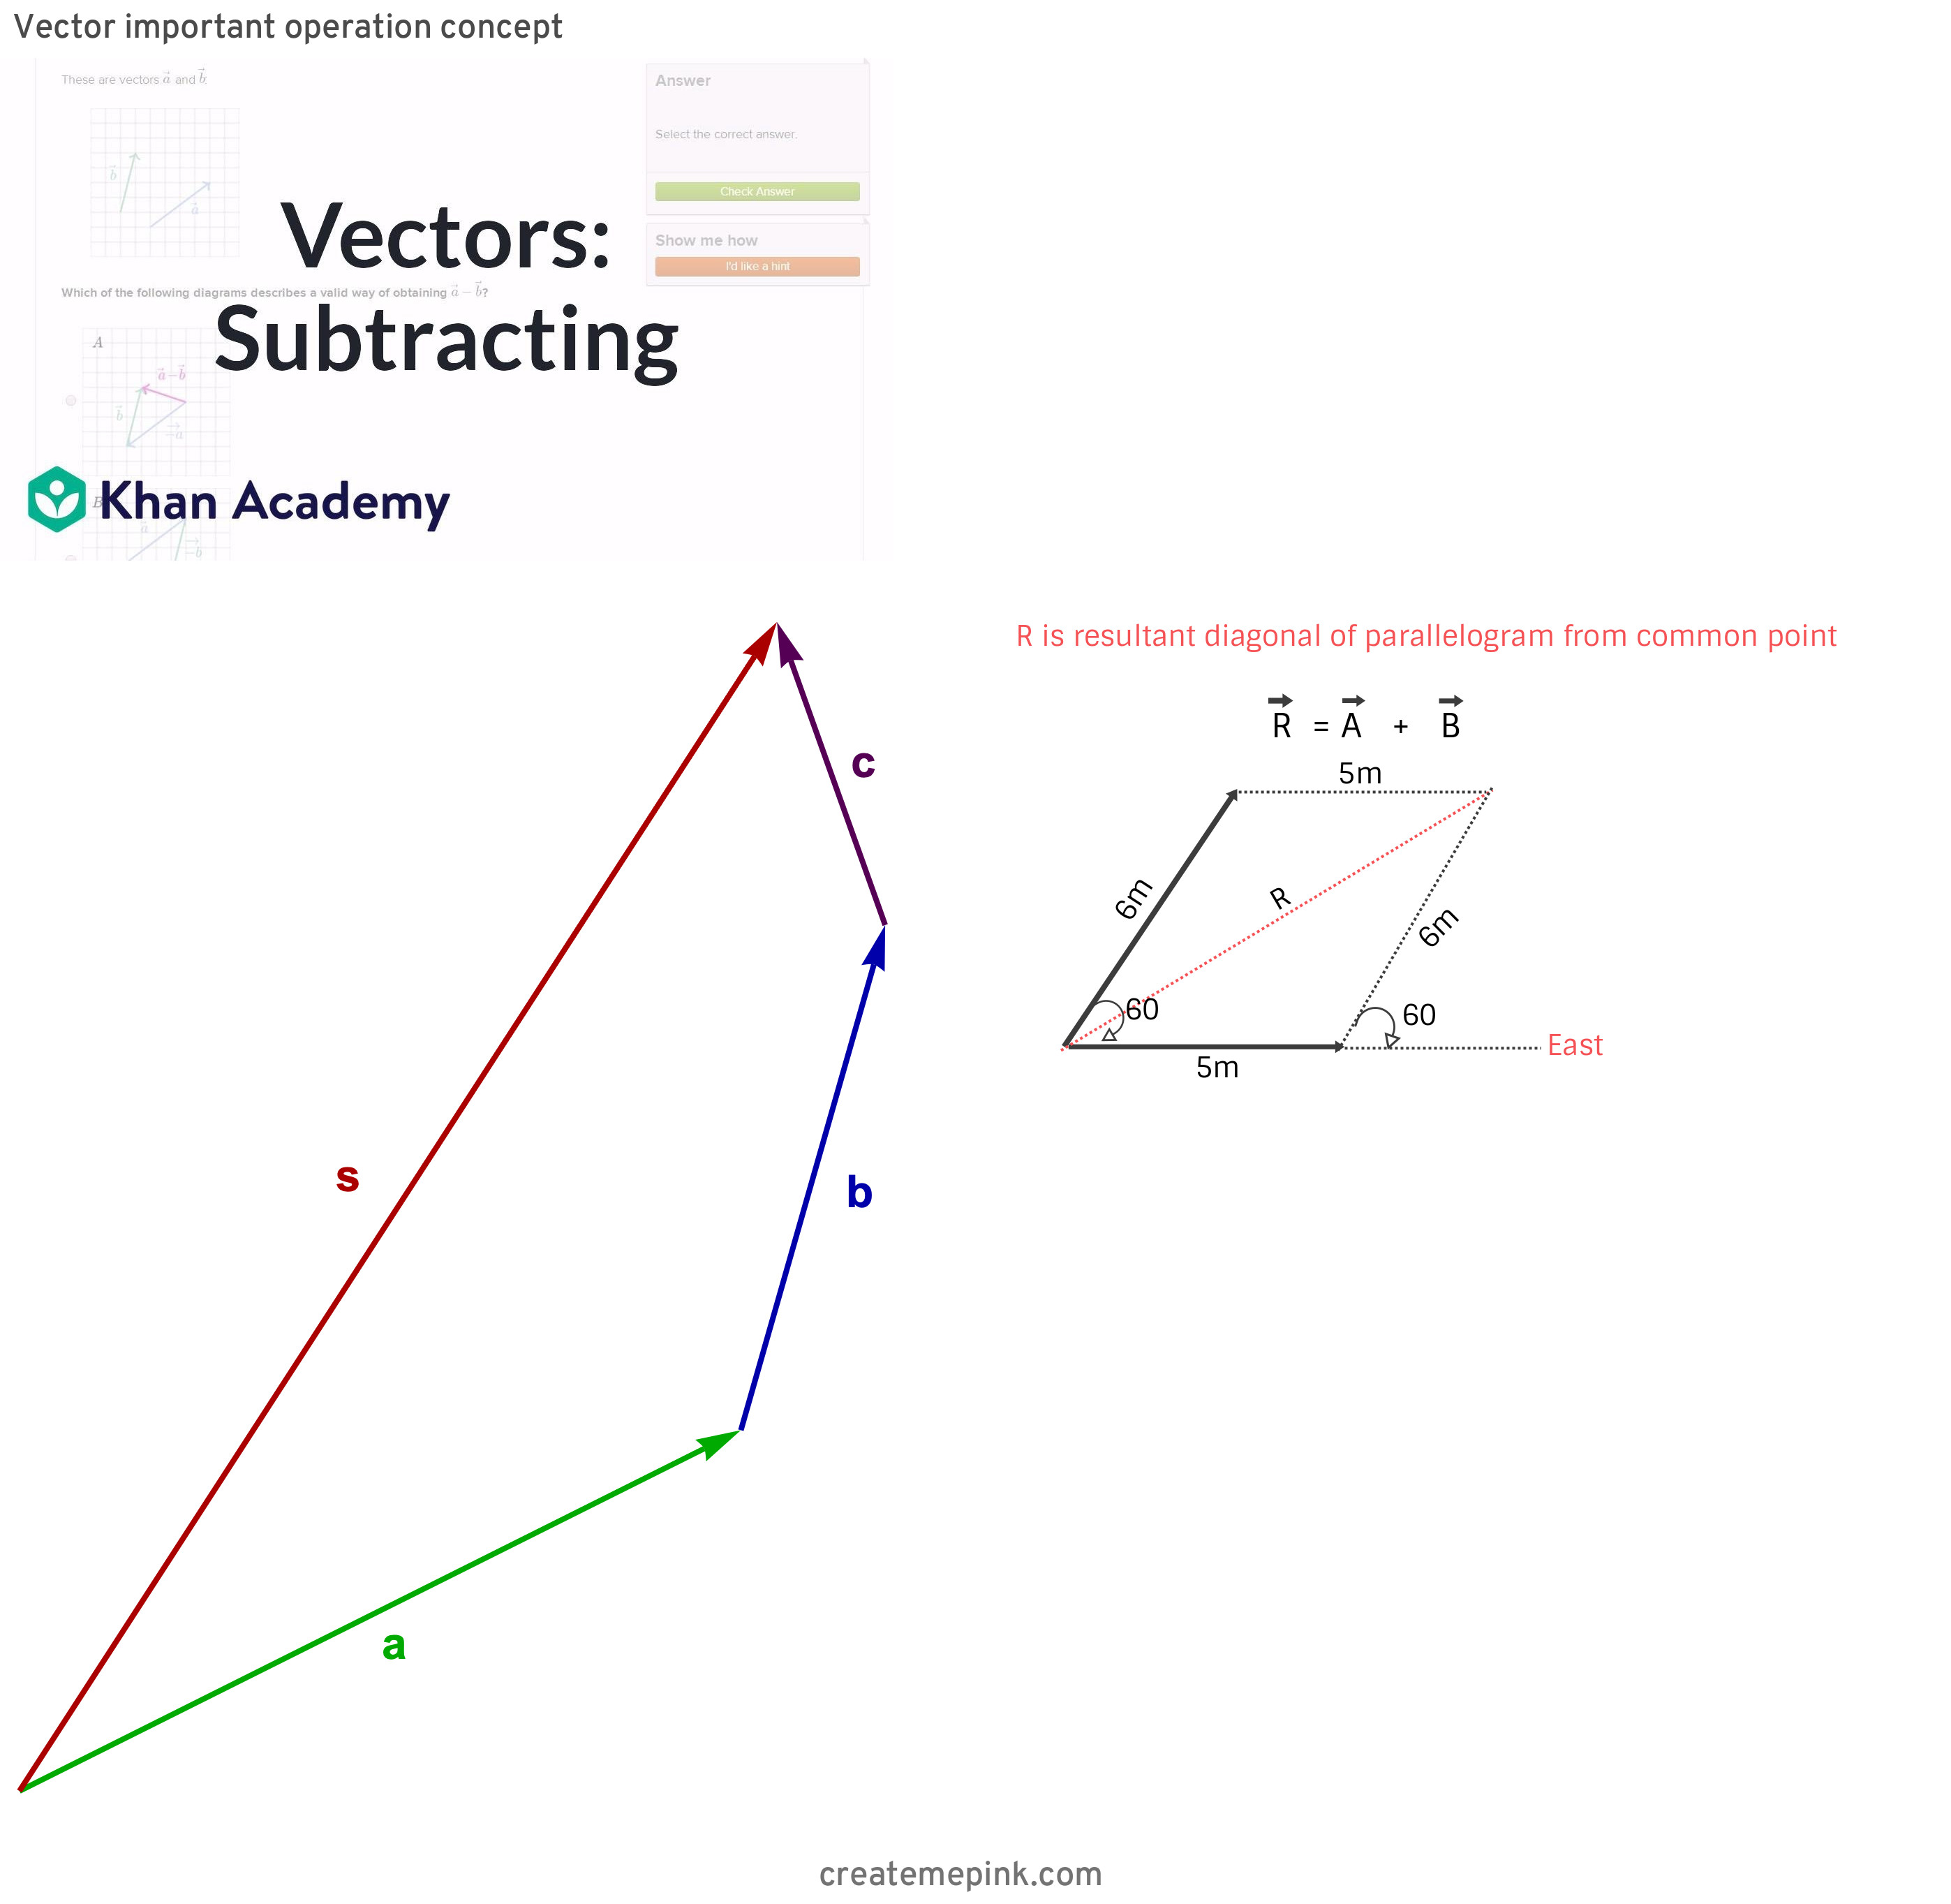 Two Vectors Tail To Tail: Vector Important Operation Concept